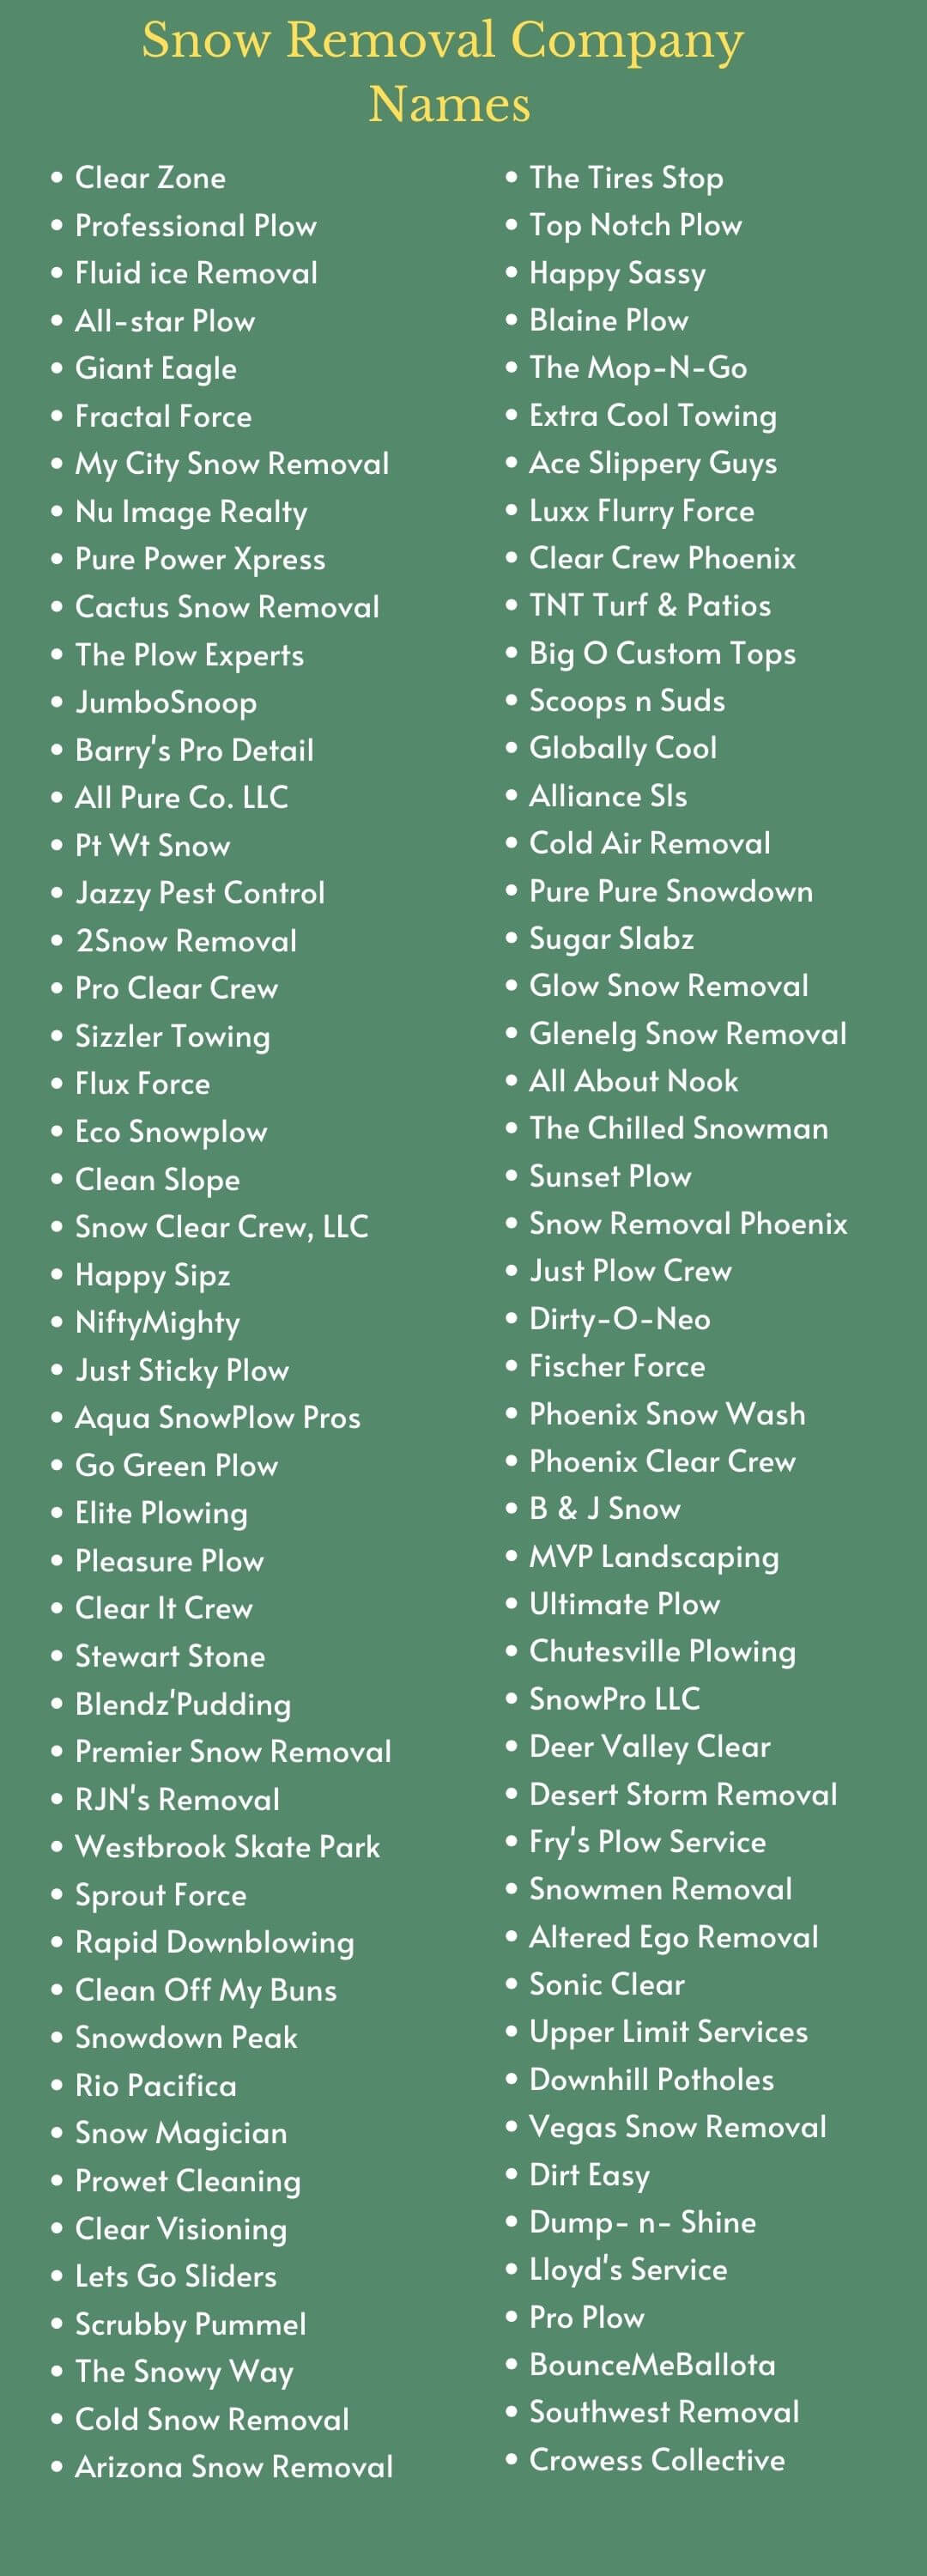 Snow Removal Company Names infographic